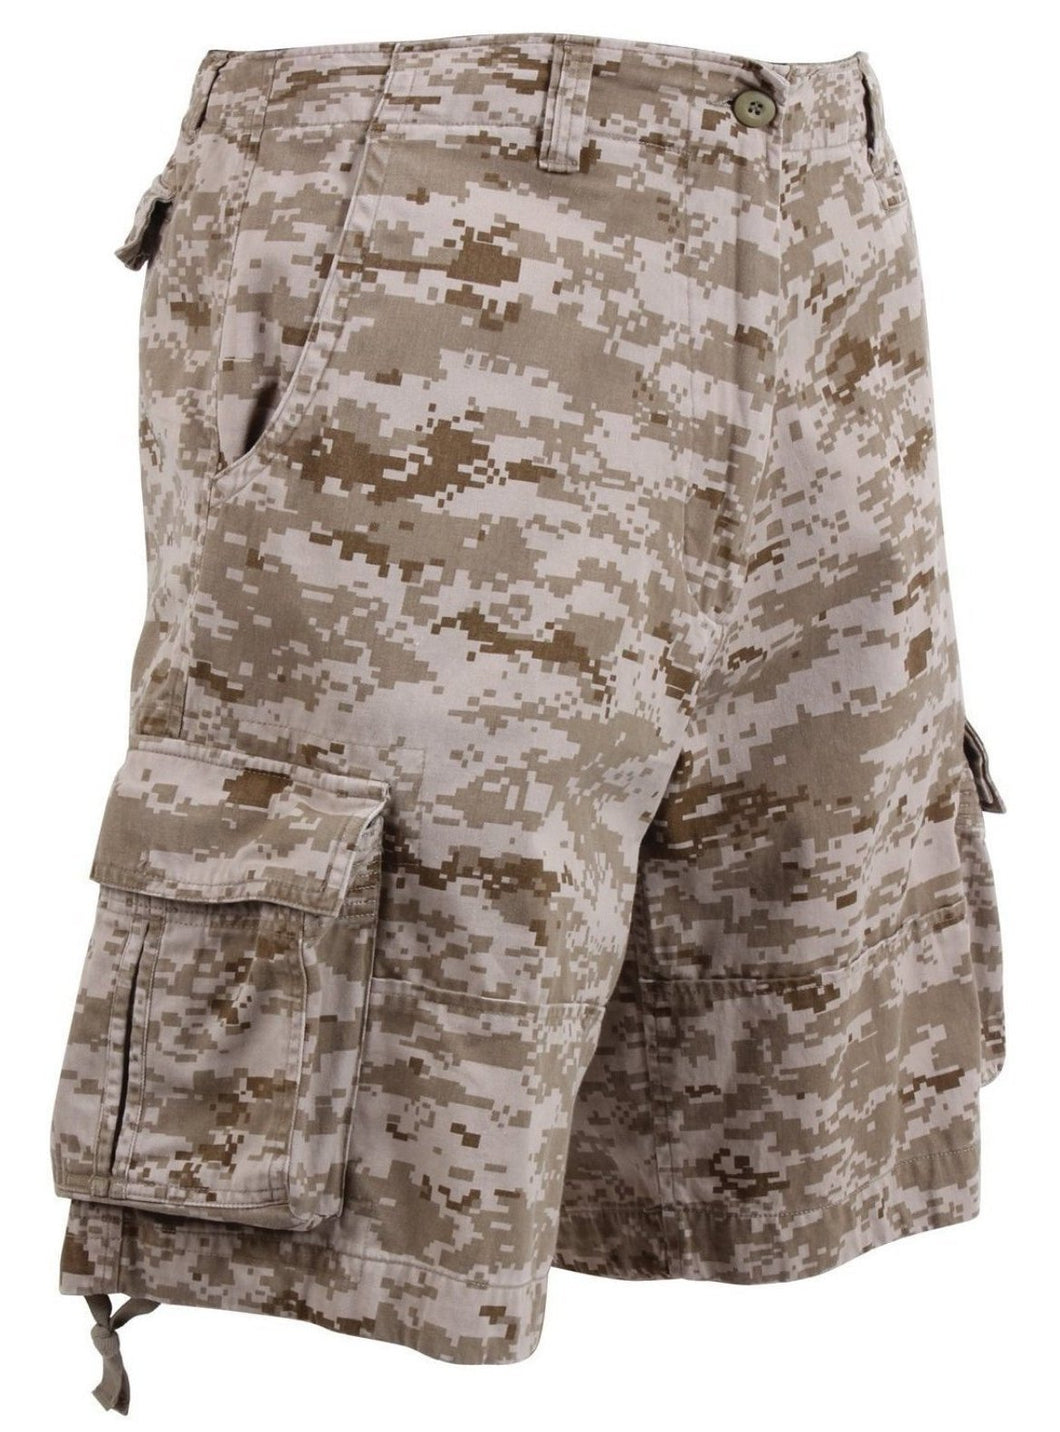 Desert Digital Camo Cargo Shorts - №365 Outfitters